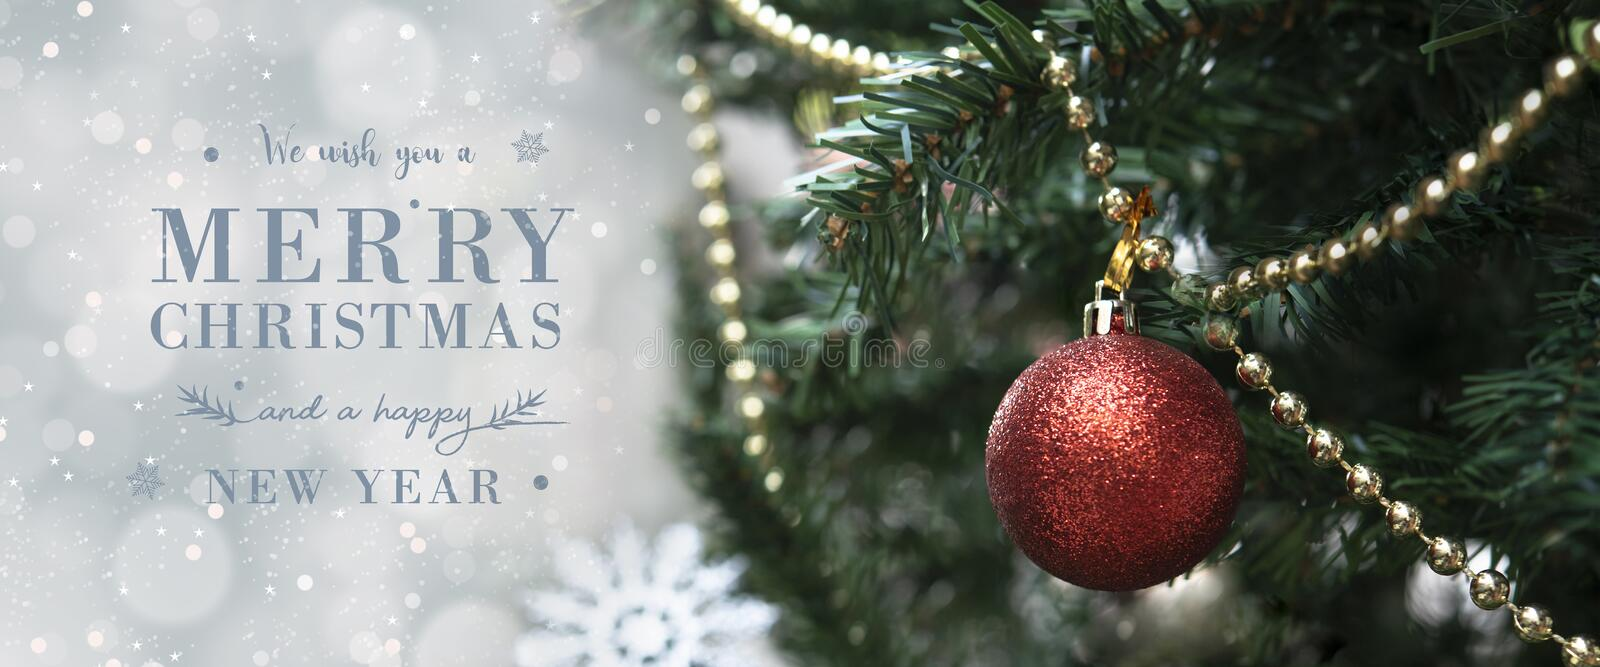 Christmas tree with decorations and light bokeh background. for Christmas and Happy New Year 2020. header and cover royalty free stock photo